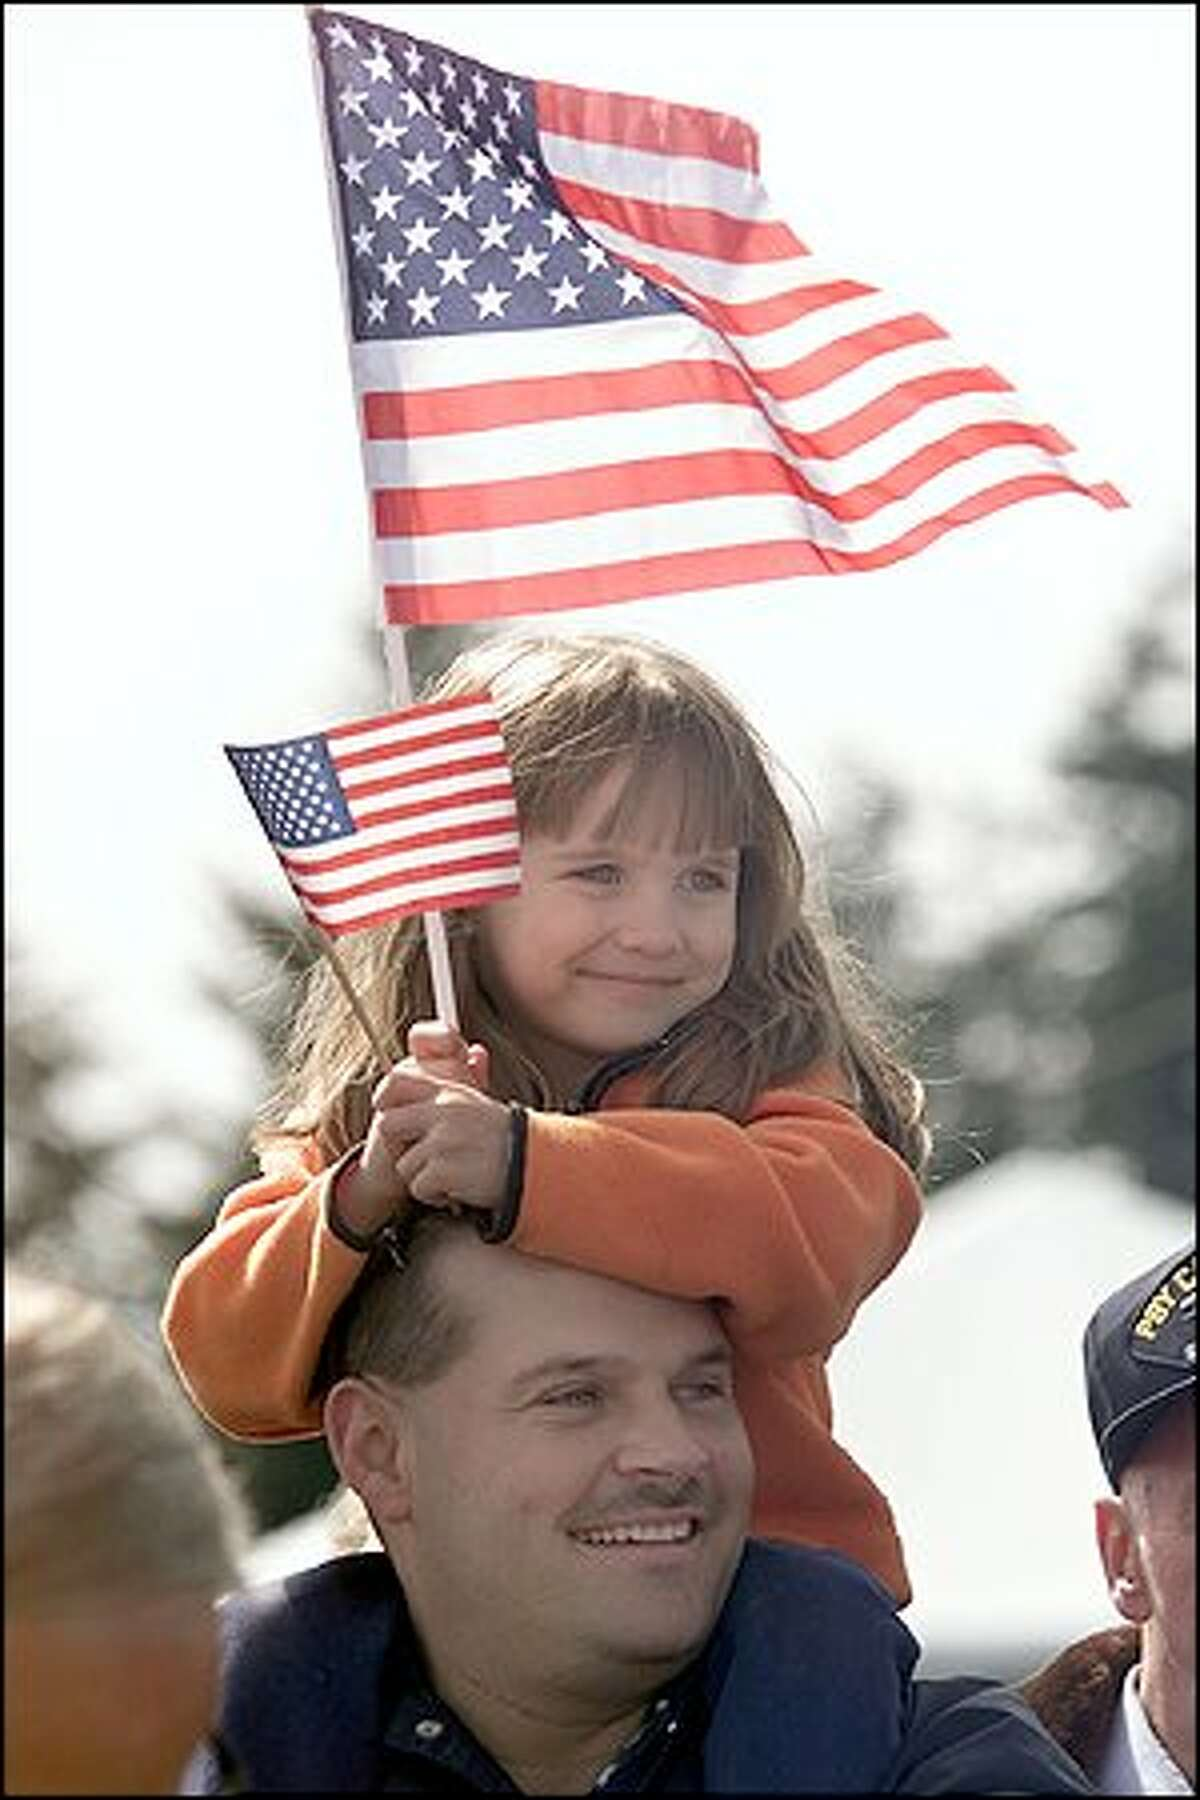 Jamie Bigham, 5, sits on her dad Kevin's shoulders as they wait for VQ-1 to return to Whidbey Island. About 7,000 spectators came to support the crew and give them a heroes' welcome.